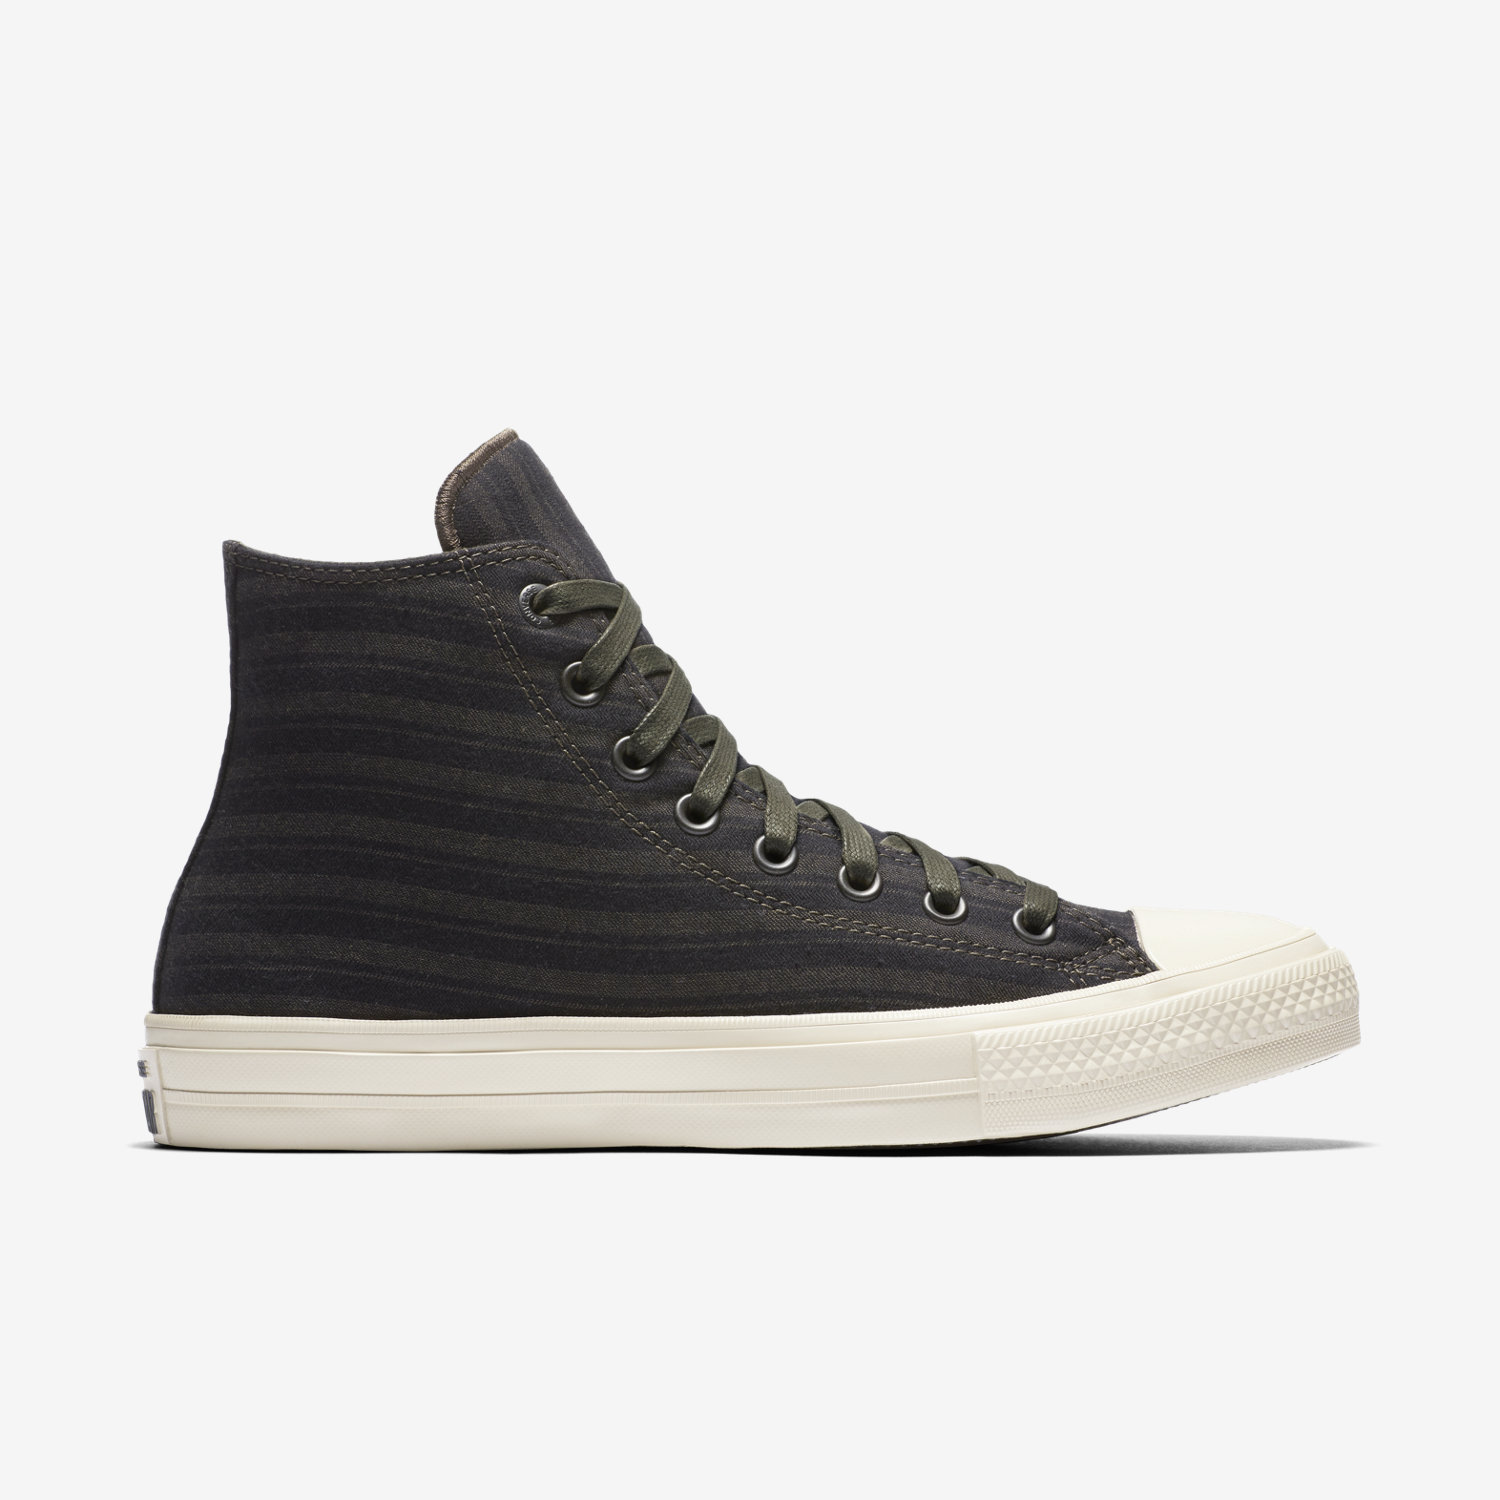 nike shoes for girls high tops black. converse x john varvatos chuck ii herringbone high top unisex shoe. nike.com nike shoes for girls tops black